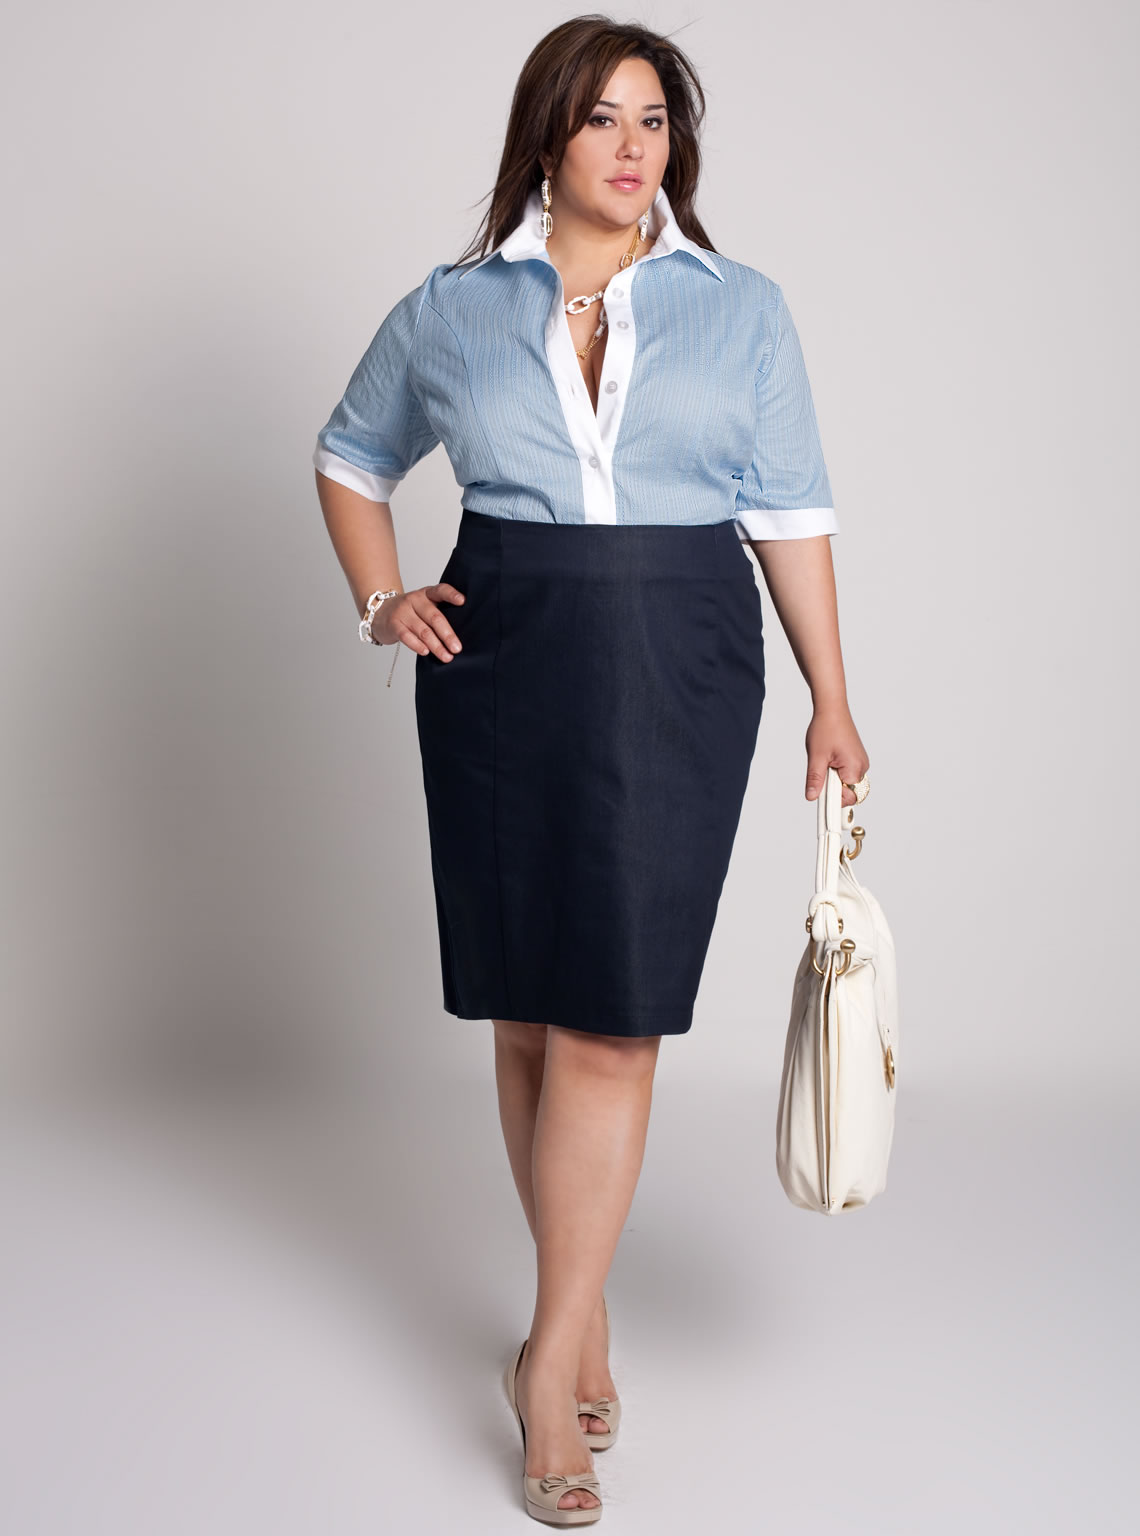 Plus Size Clothing For Ladies